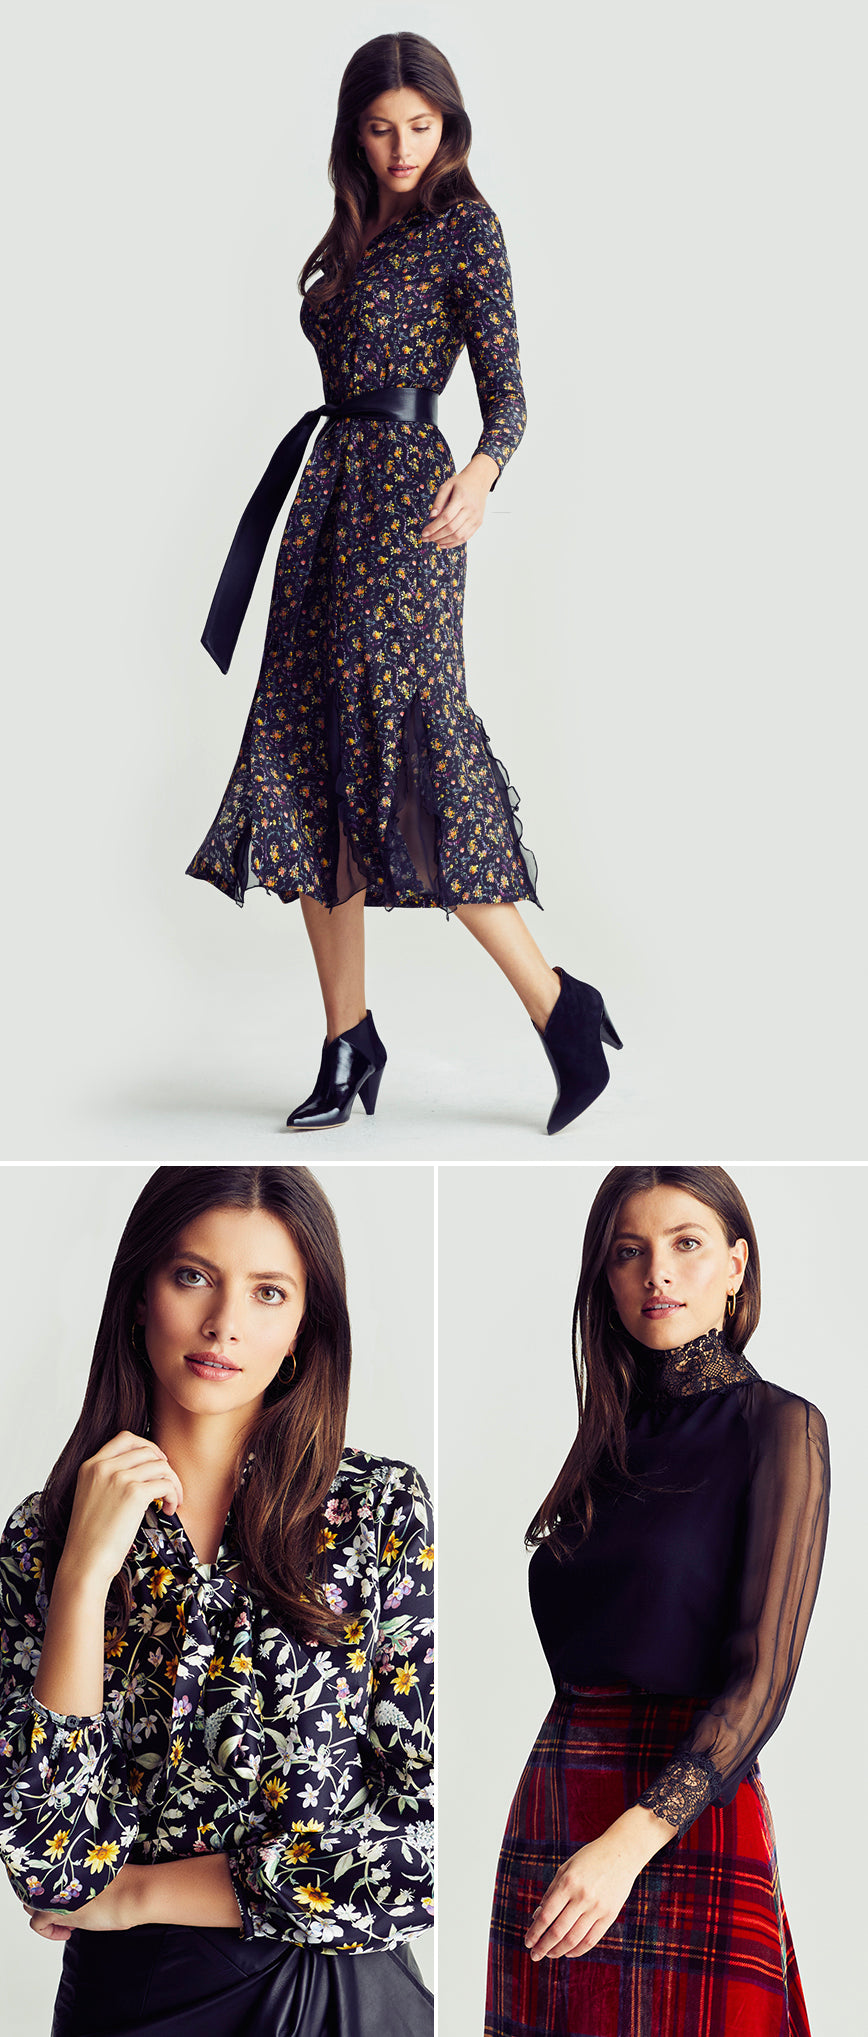 ridleylondon-adrianna-printed-floral-silk-midi-dress